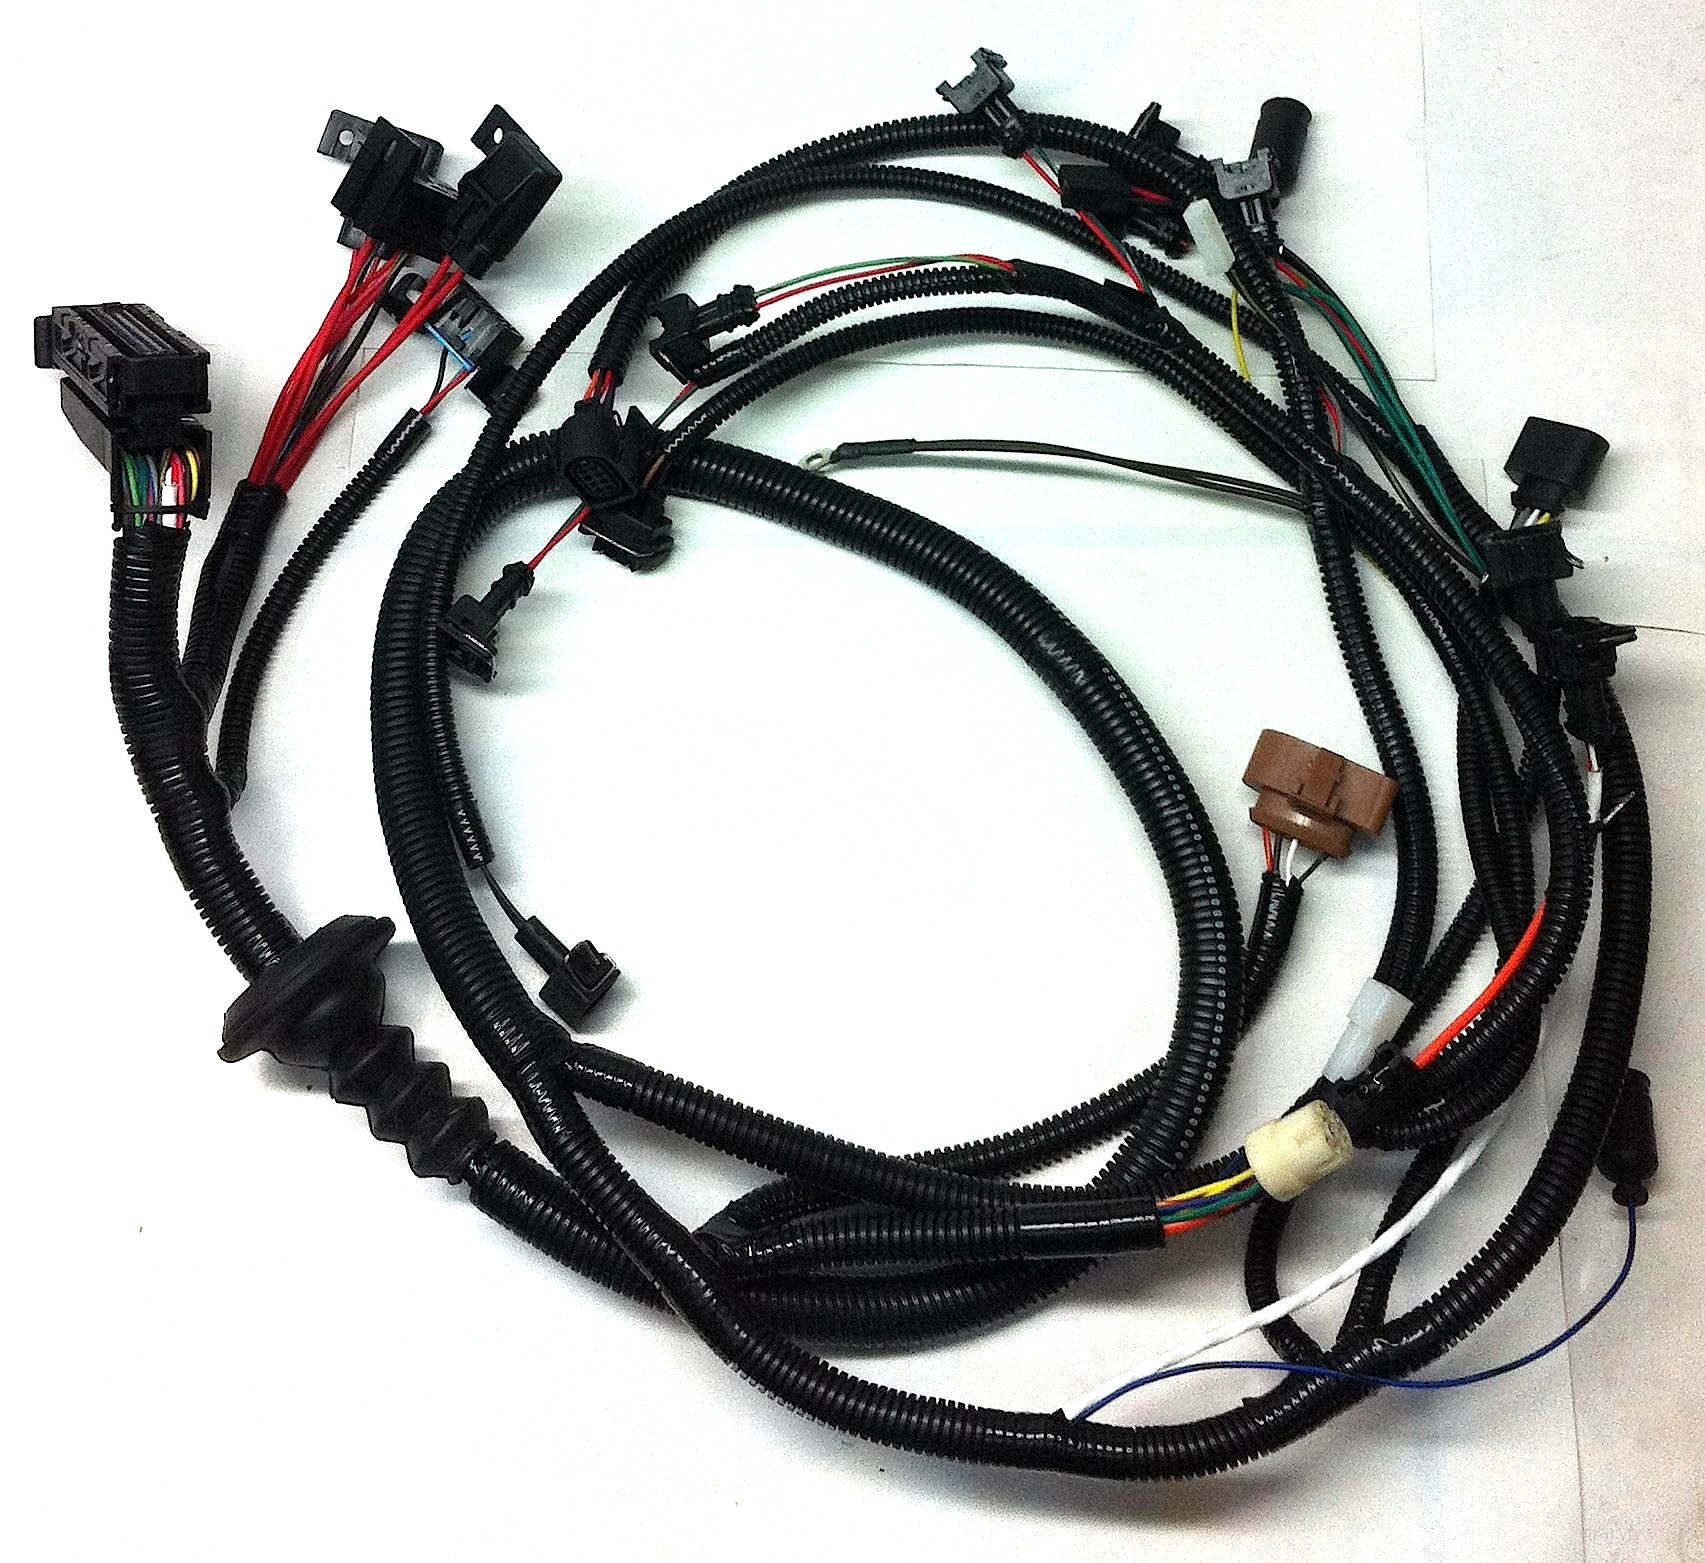 2lr tiico conversion wiring harness foreign auto & supply, inc car wiring harness 2lr tiico conversion wiring harness